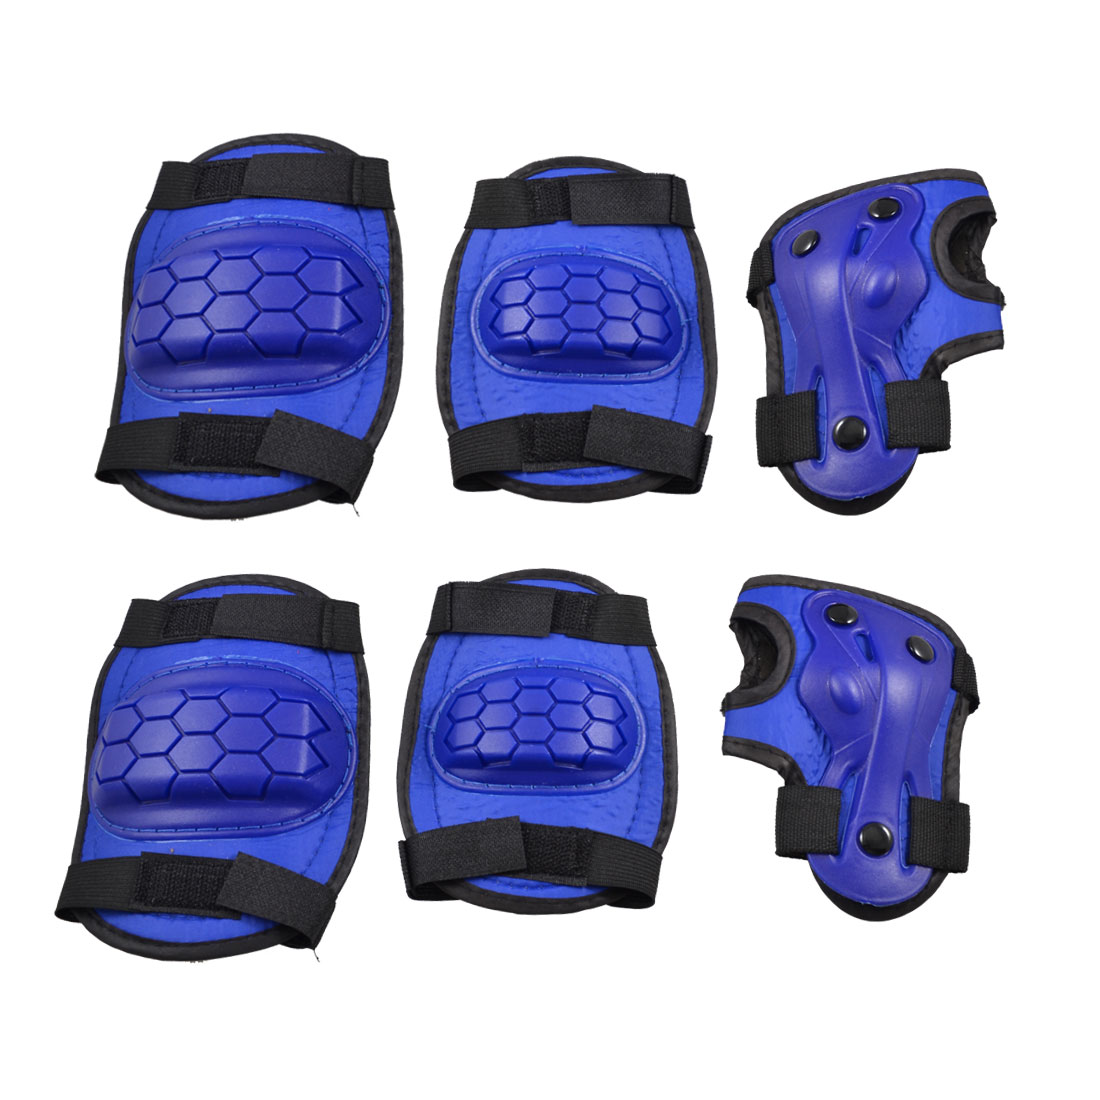 Nylon Adjustable Strap 3 in 1 Palm Elbow Knee Support Gear Set Blue